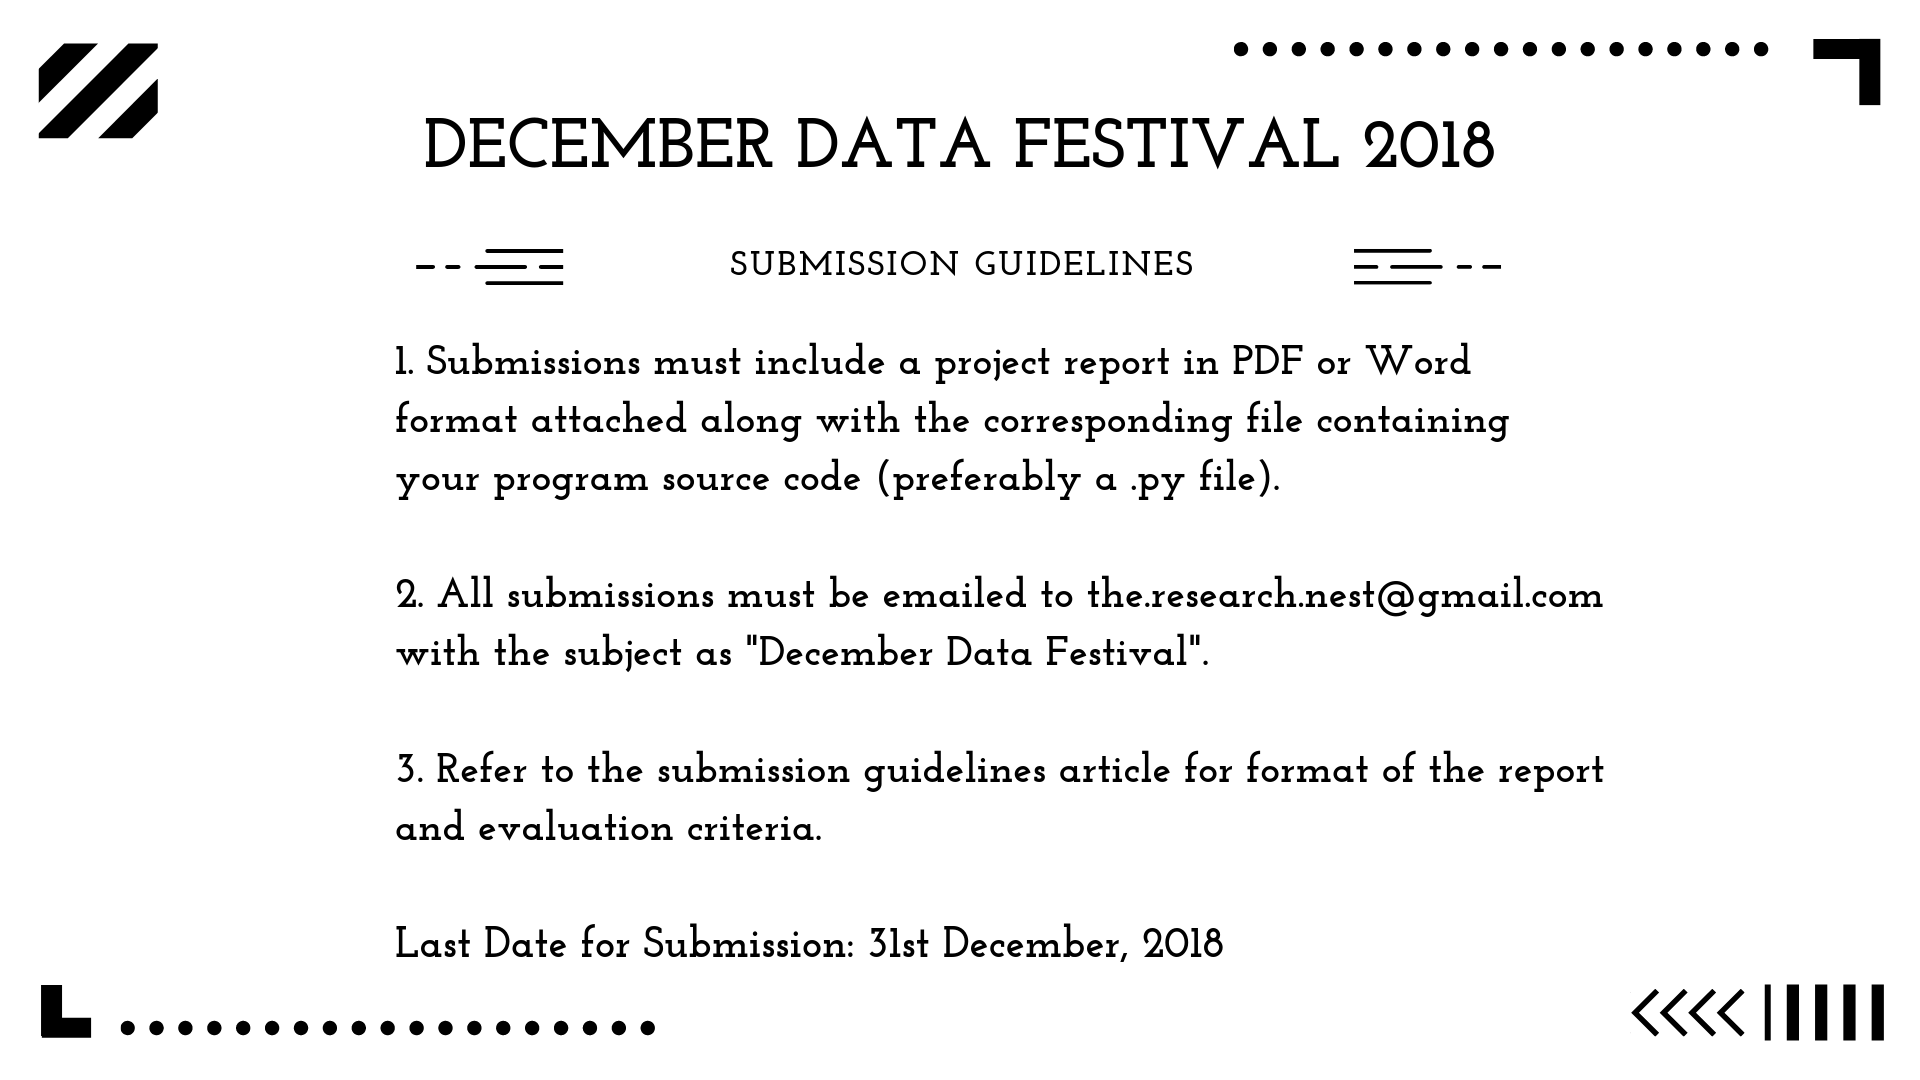 012 Research Paper Data Science Papers Pdf 1mqc R3fe Sensational 2018 Full